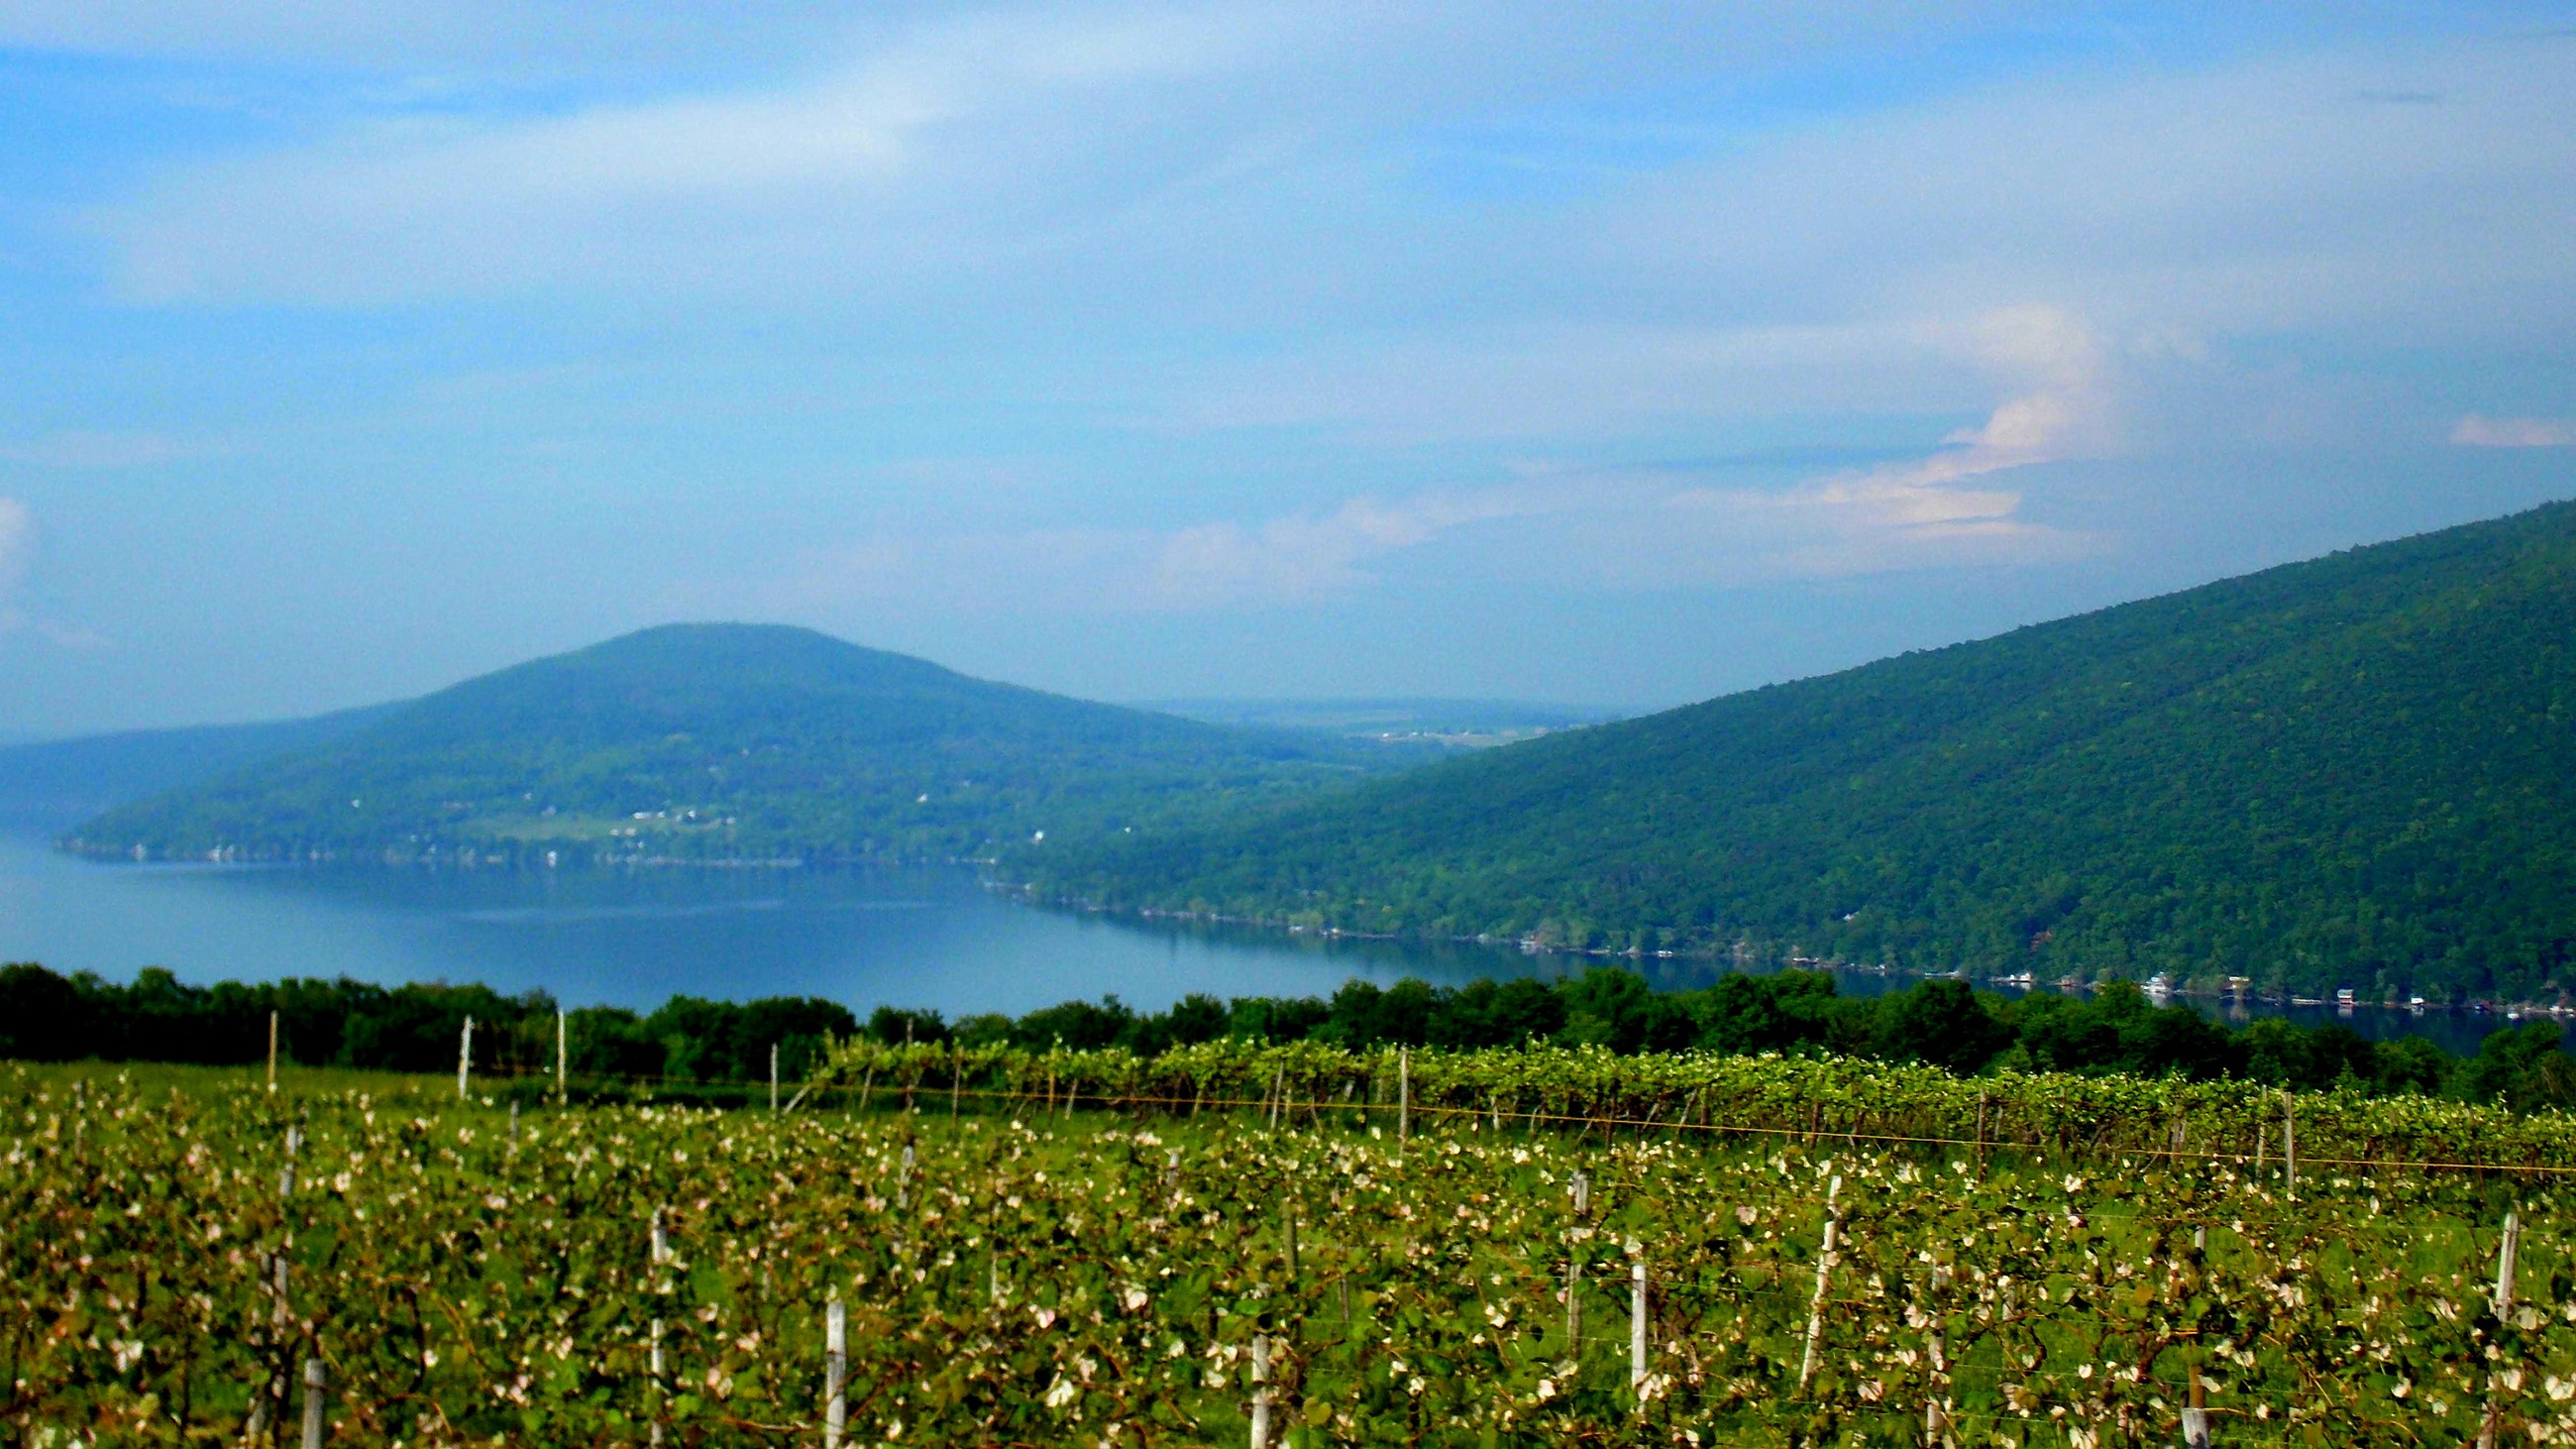 Vineyard on Canandaigua Lake